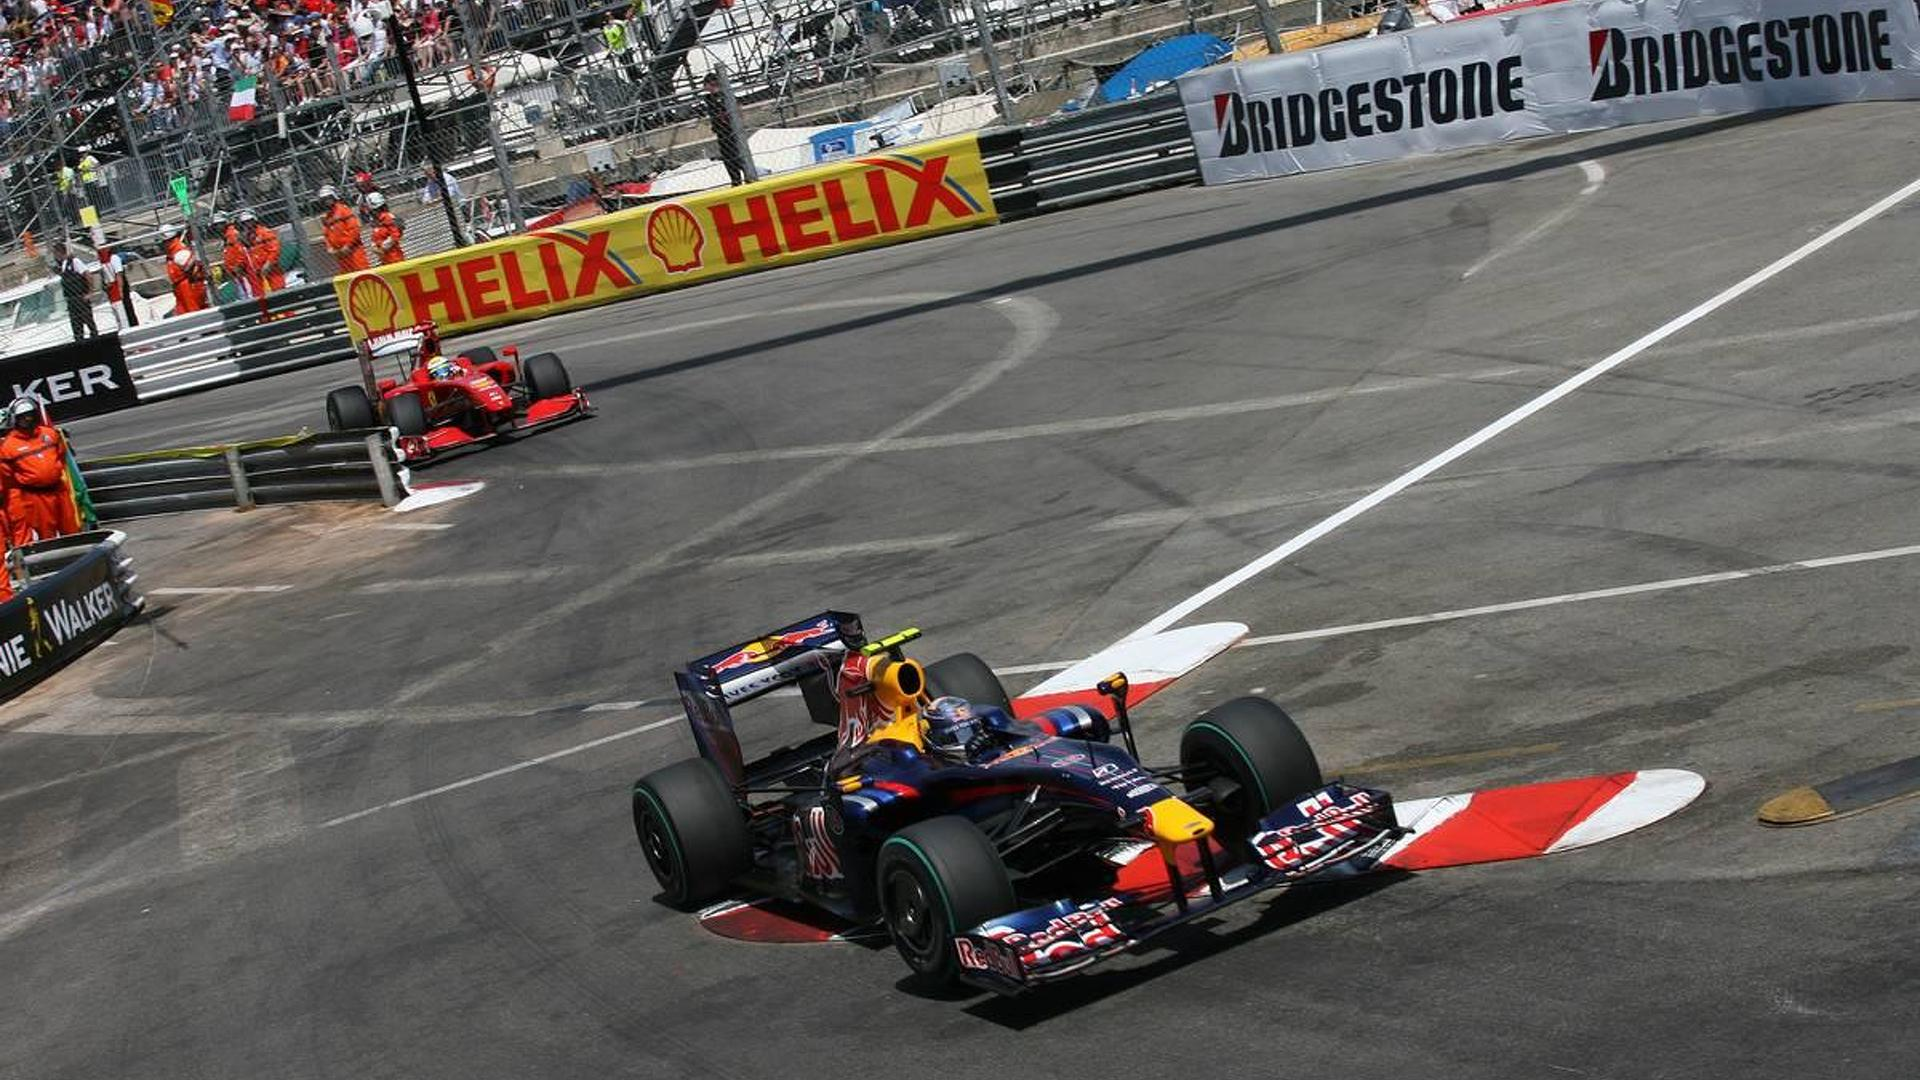 FIA installs higher kerbs for 2010 Monaco